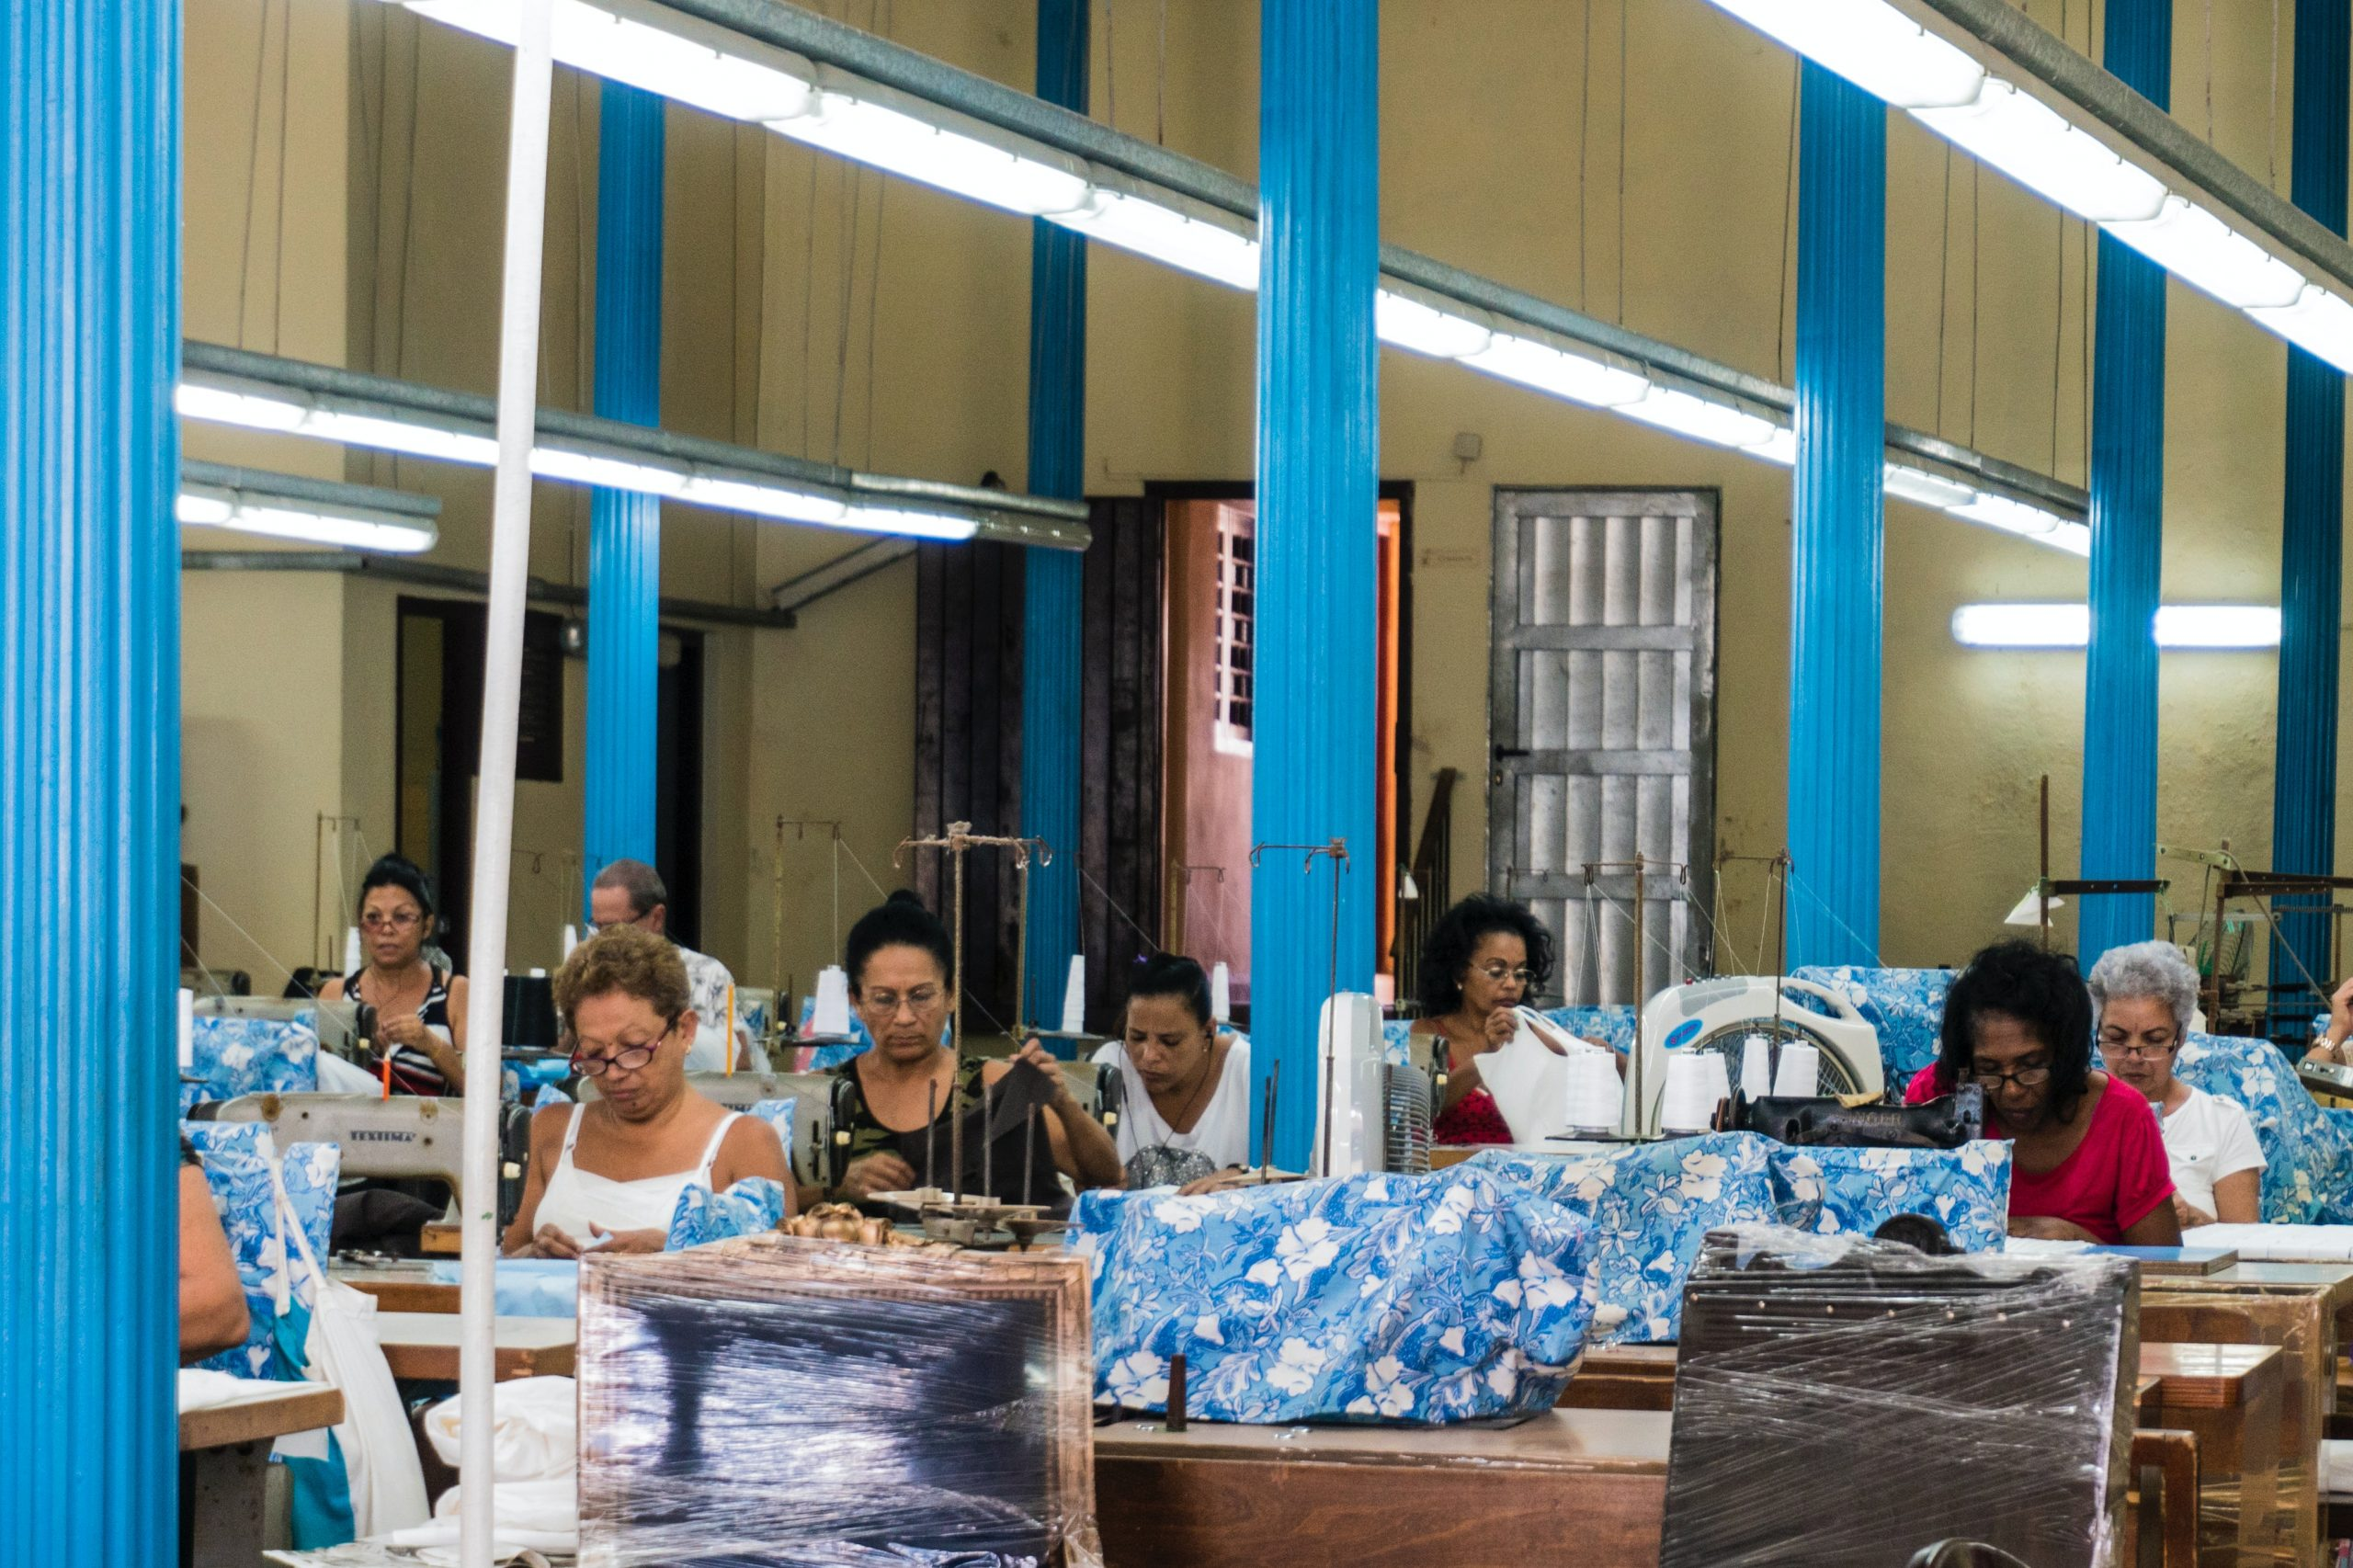 Factory workers in Havana, Cuba, are seen sitting and working at sewing machines.